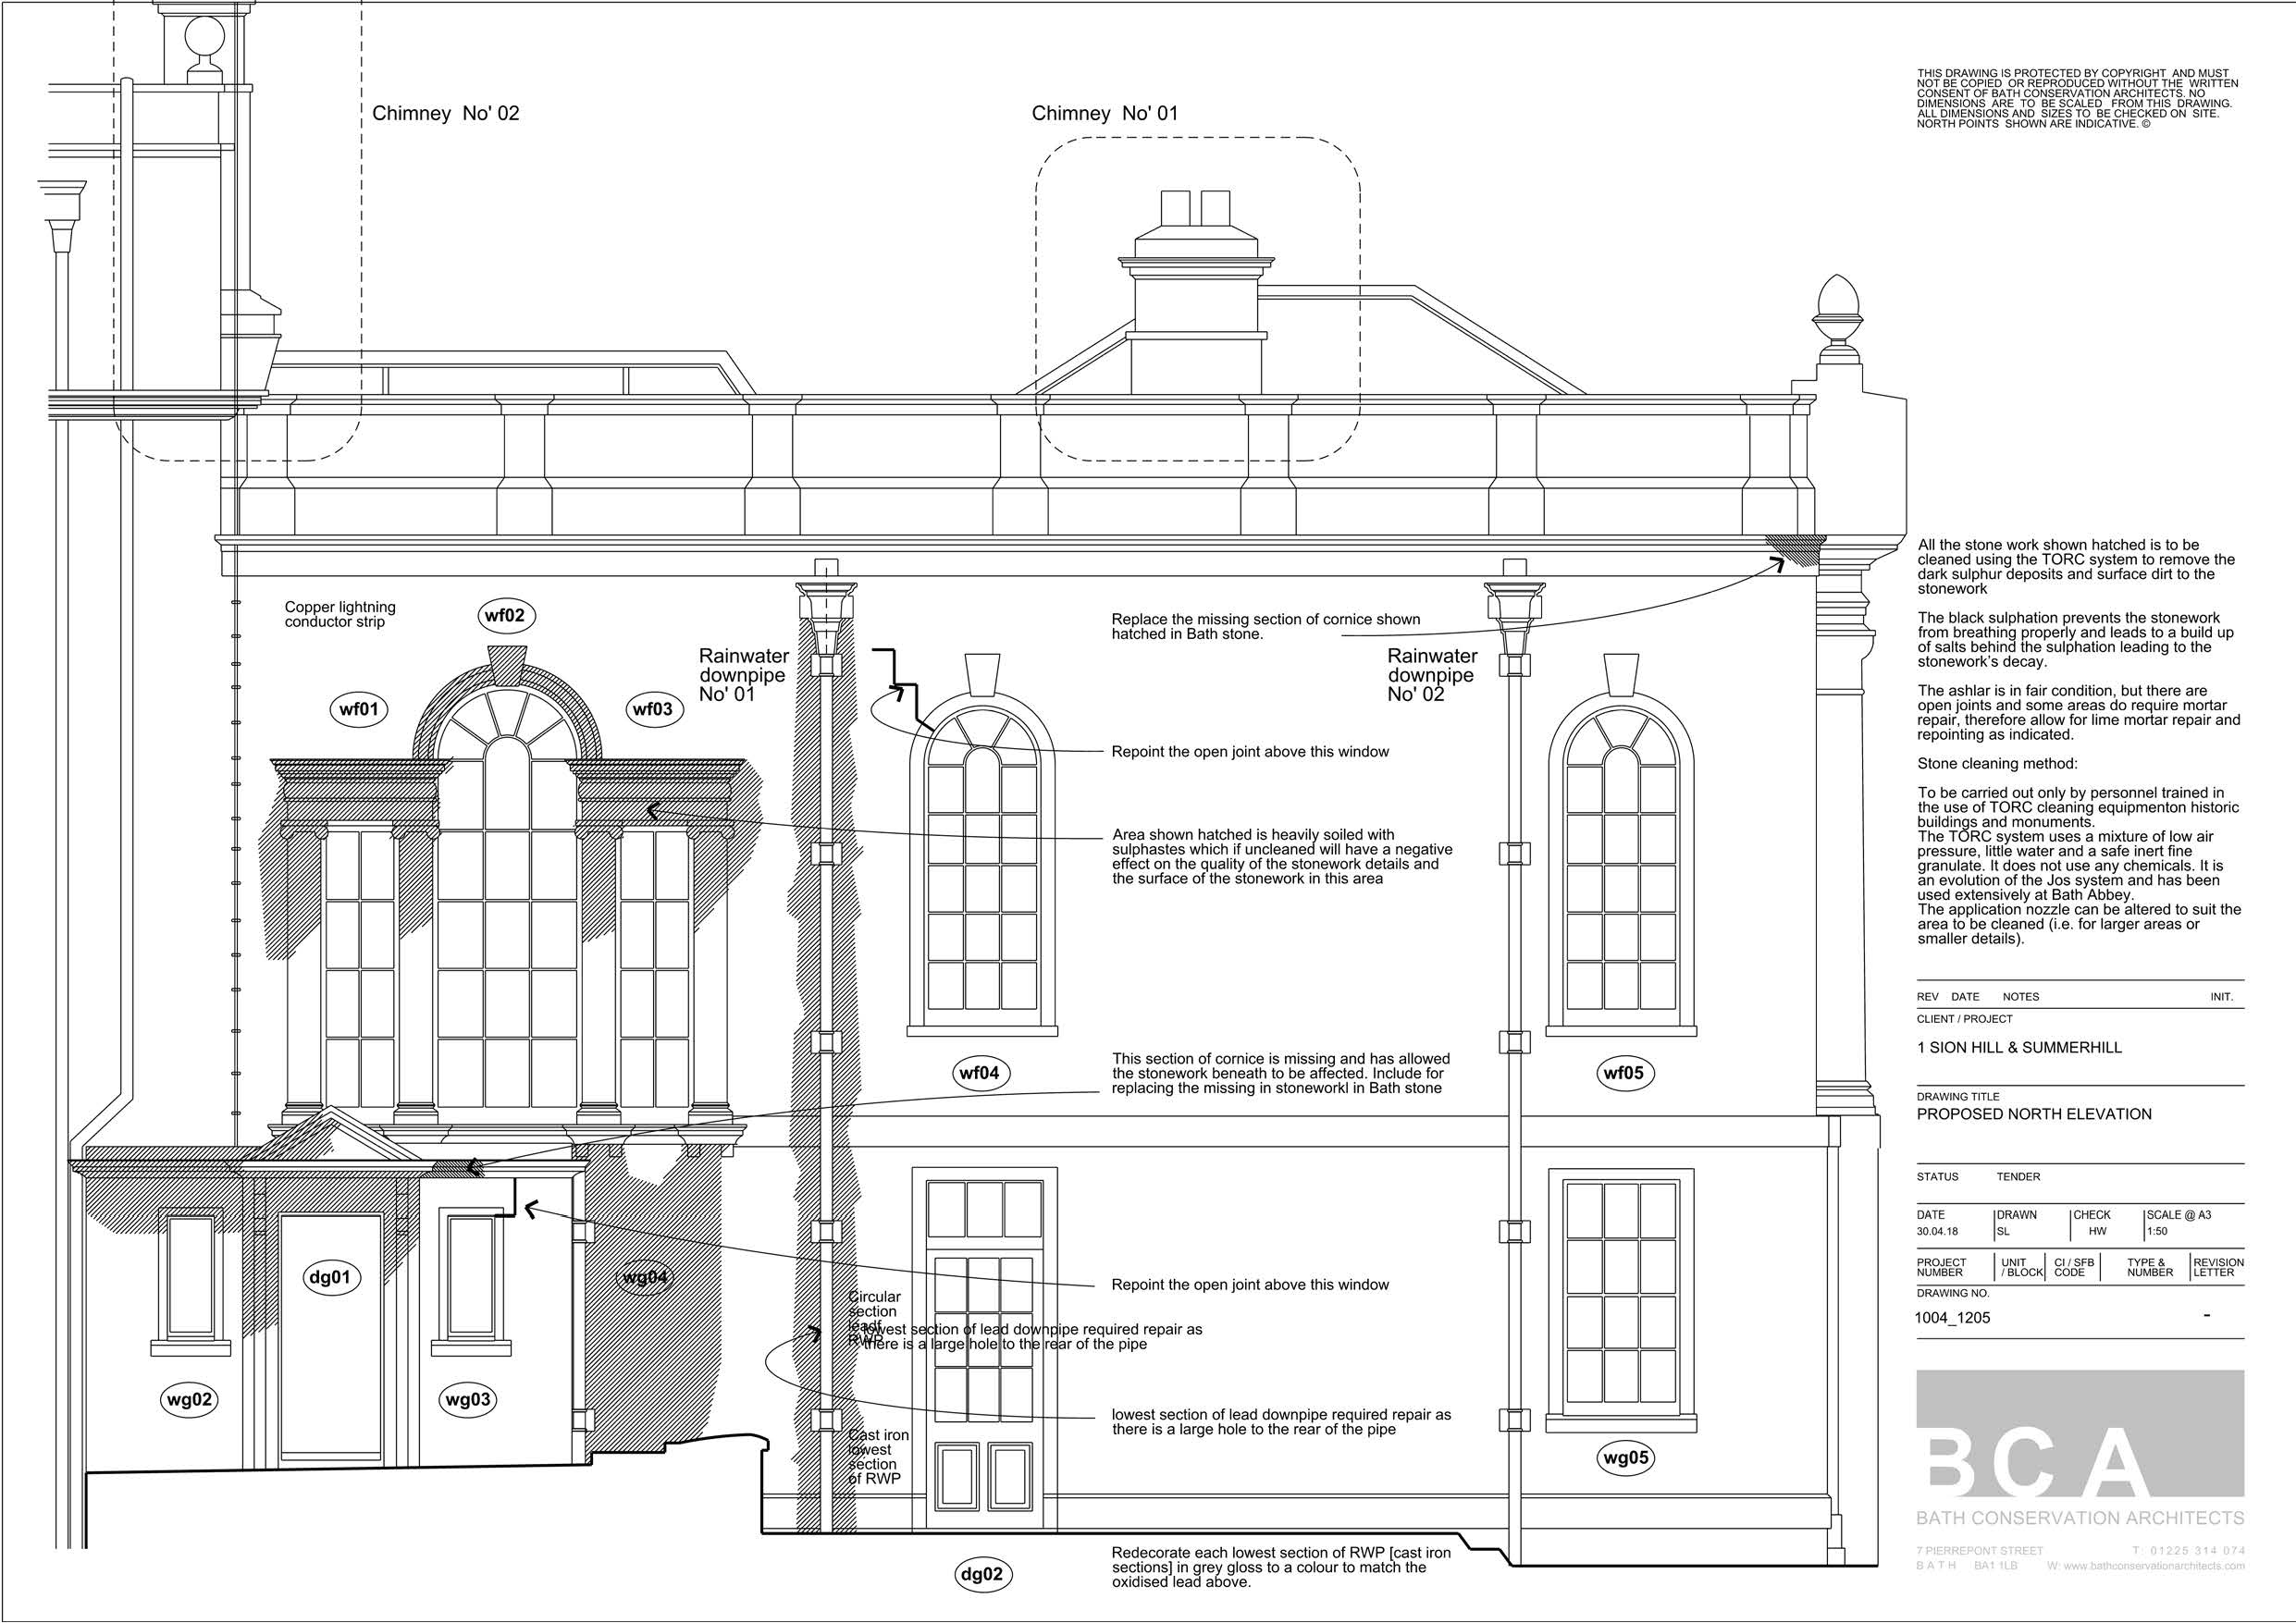 1004_1205_Proposed north elevation.png